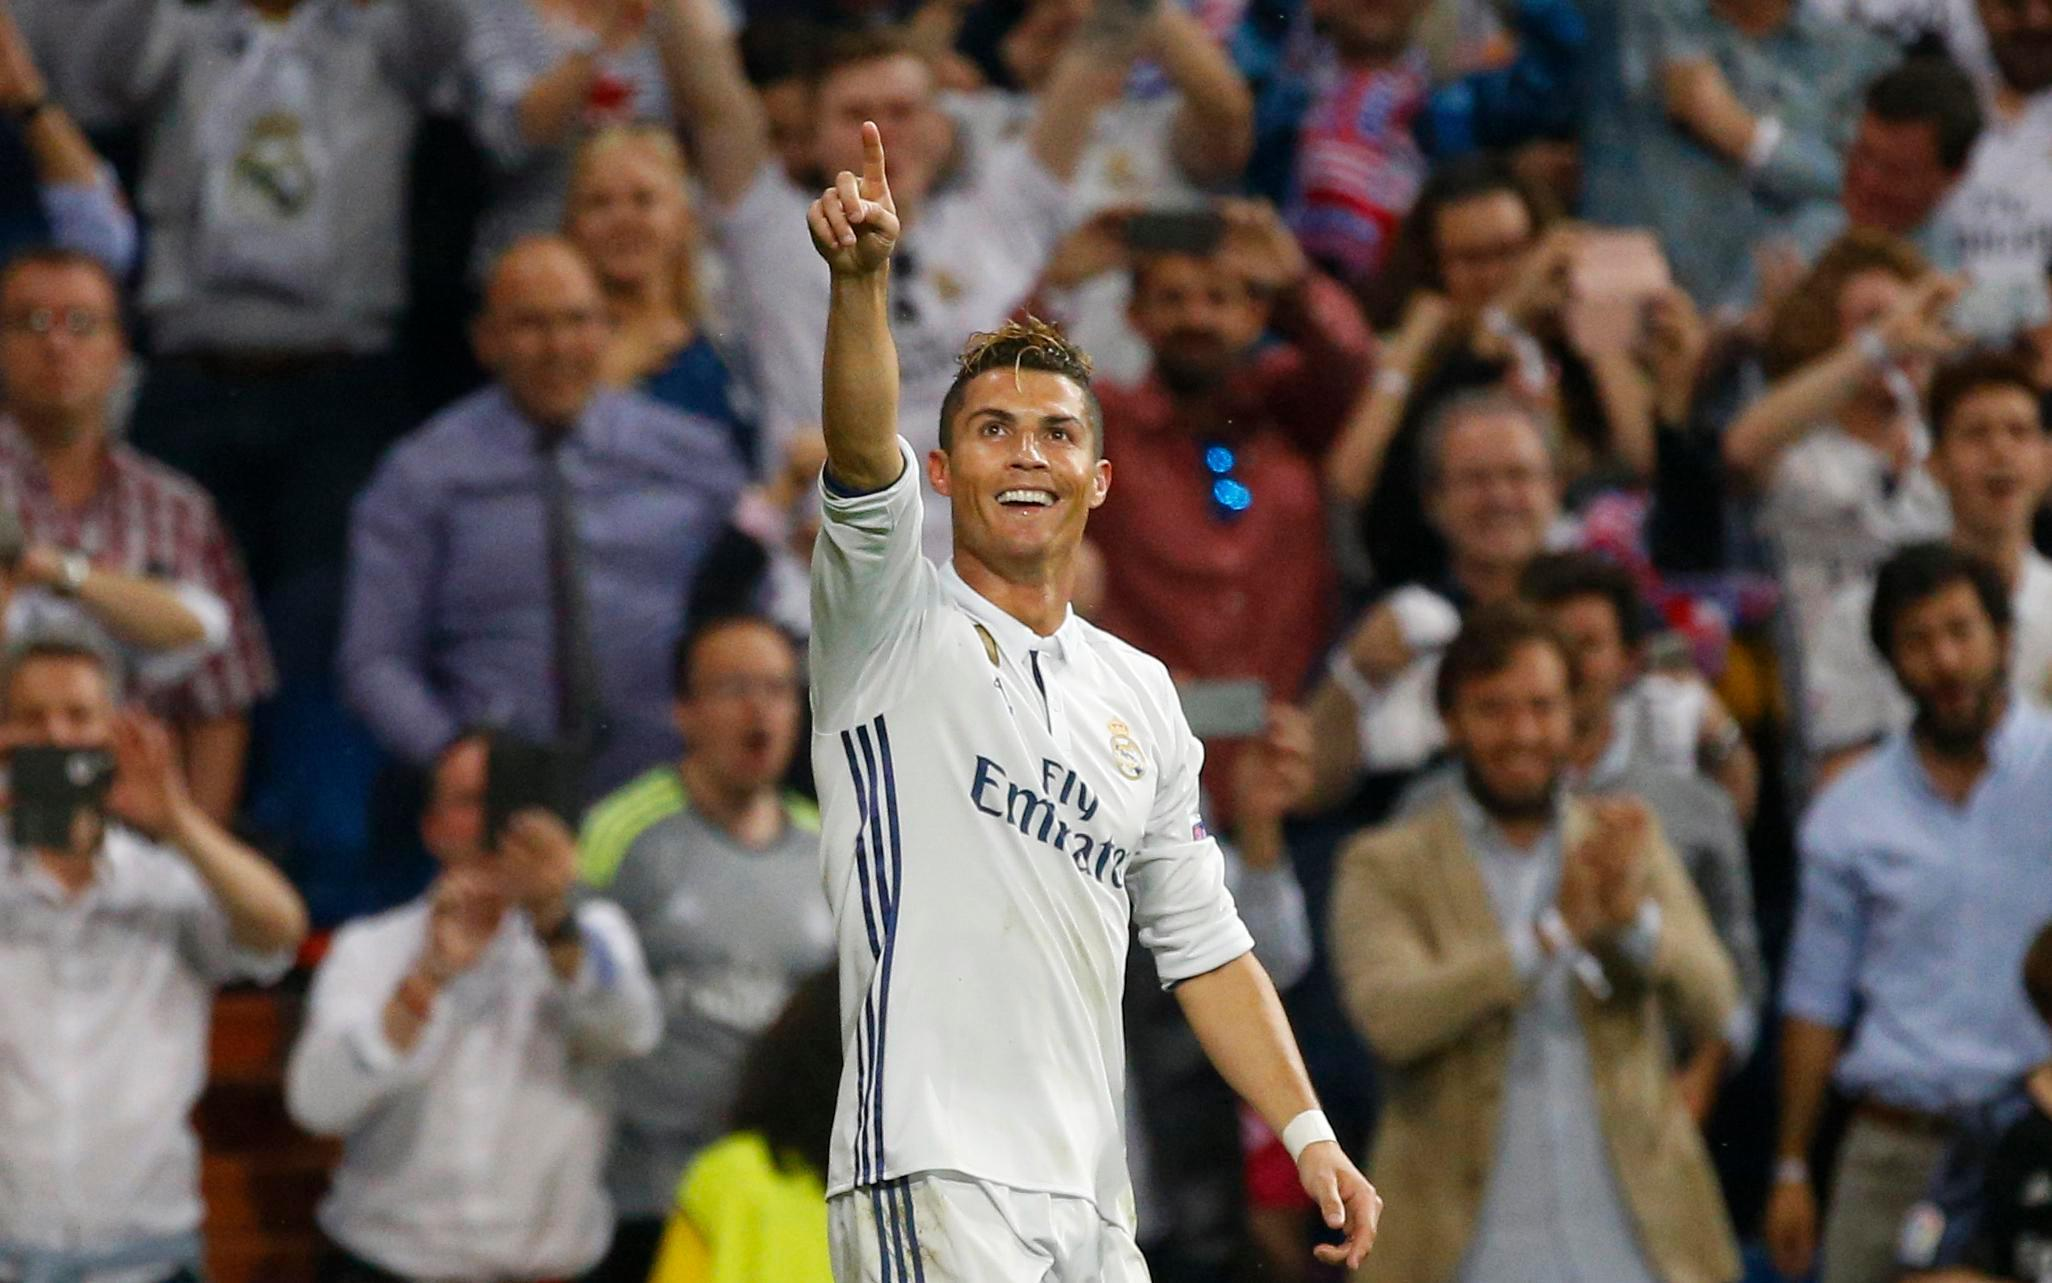 Cristiano Ronaldo scored a hat-trick against Atletico in semi-final first leg victory